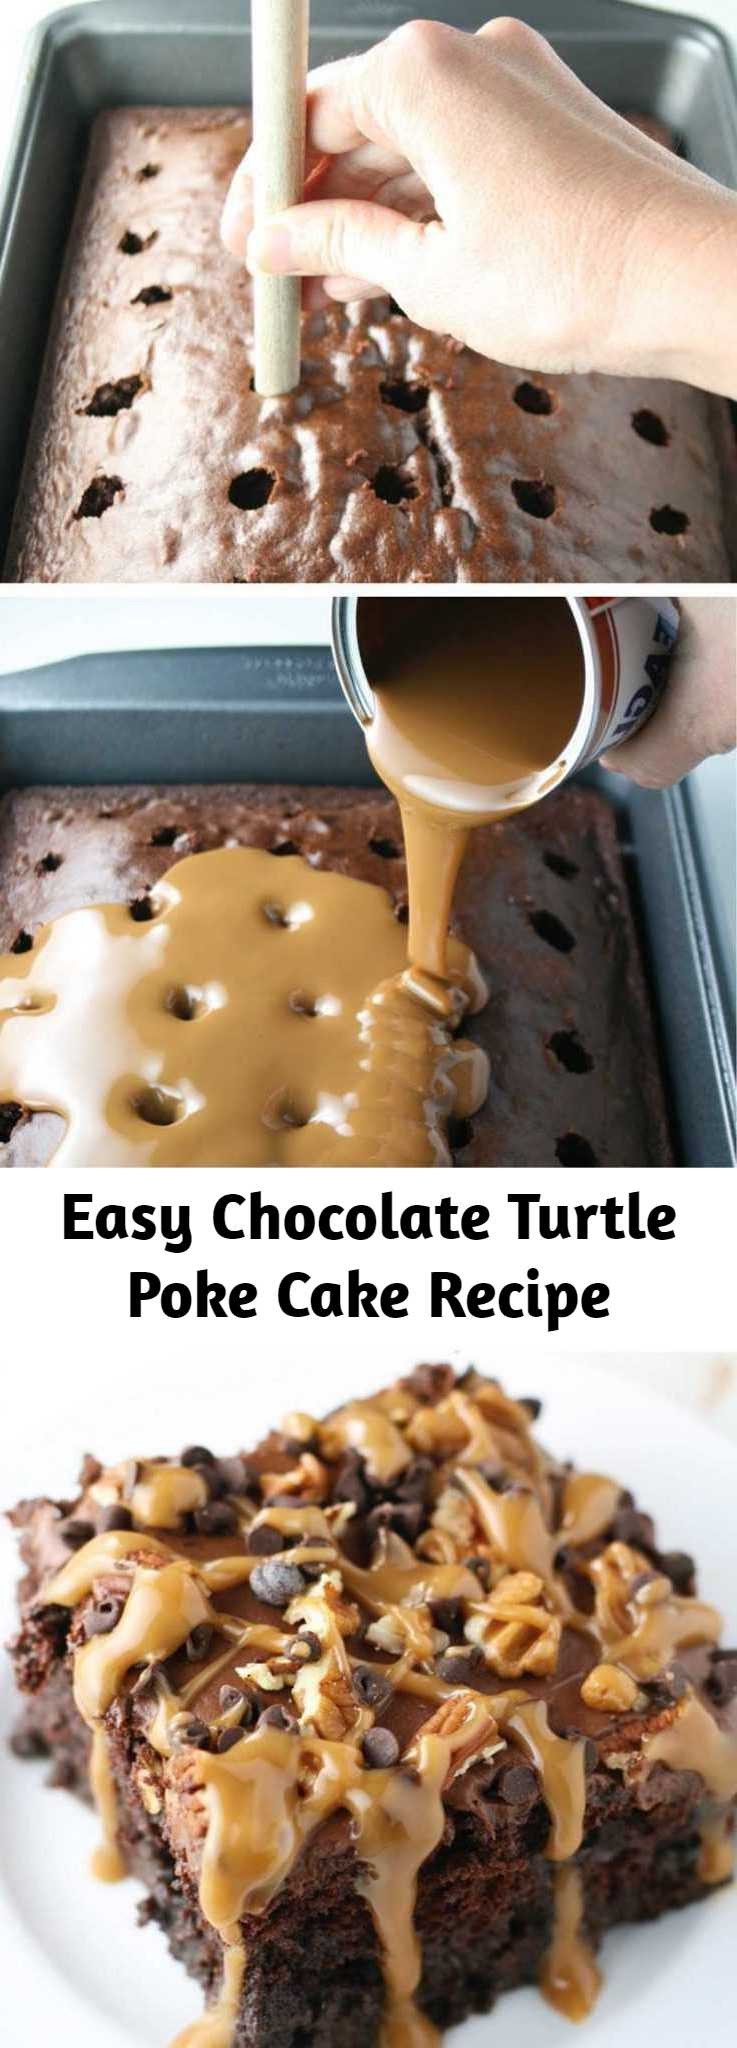 Easy Chocolate Turtle Poke Cake Recipe - Chocolate Turtle Poke Cake is a moist chocolate cake with holes poked in, then covered with caramel sauce, chocolate frosting, pecans, chocolate chips and more caramel sauce. If you're a chocolate turtle candy fan, this is the cake for you! It's so delicious! And quick, easy to make too!